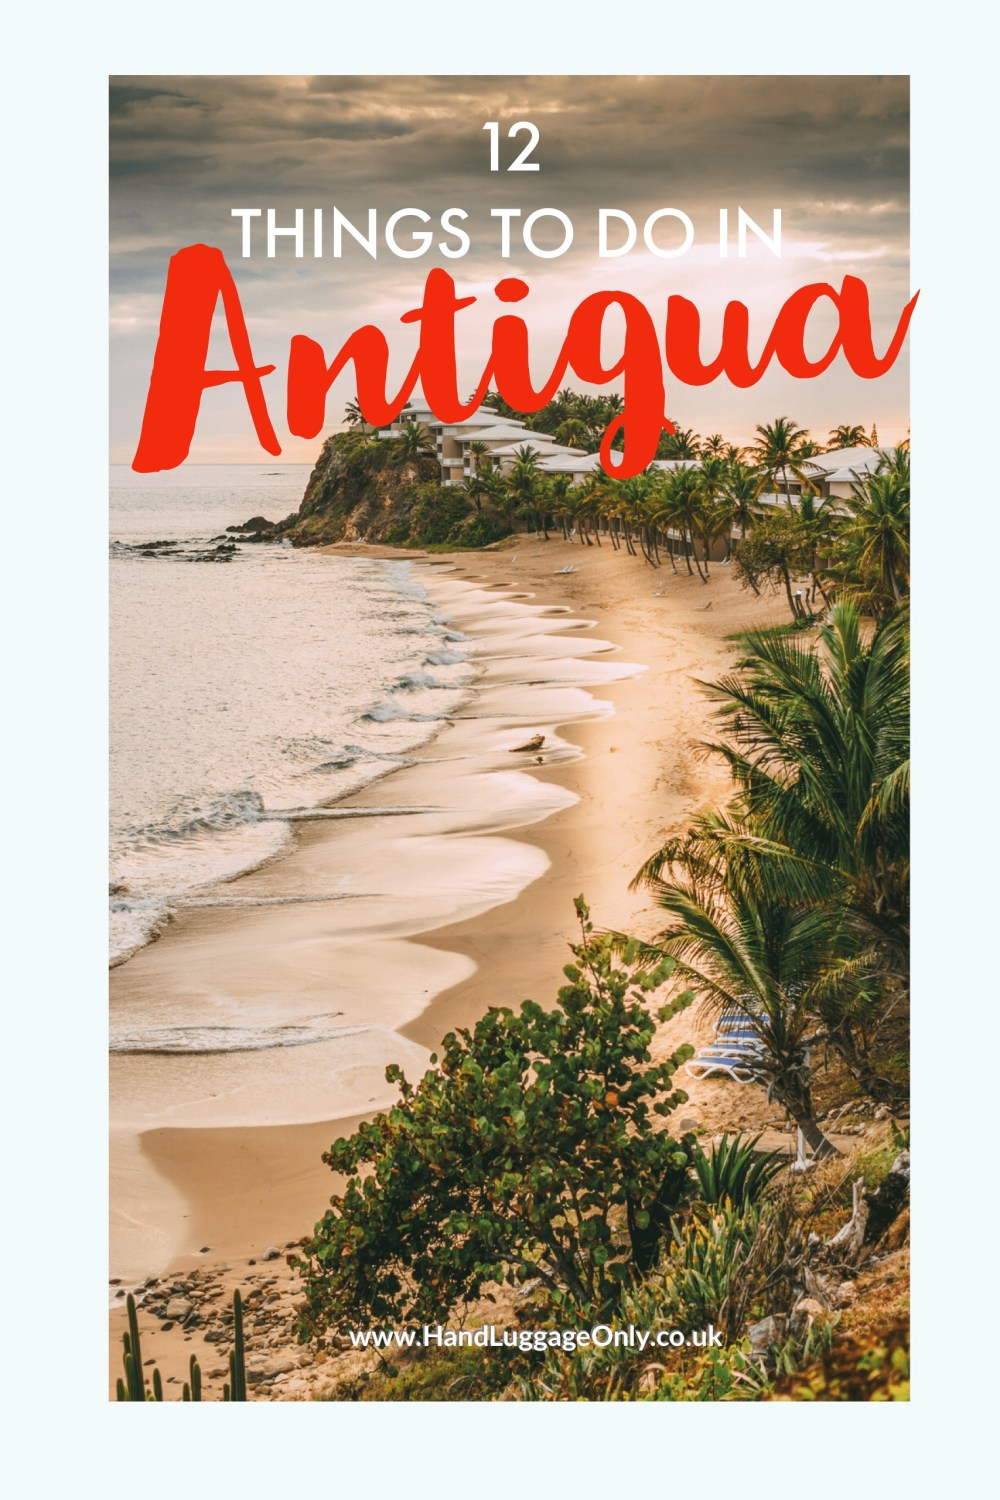 12 Things To Do In The Caribbean Island Of Antigua (2)